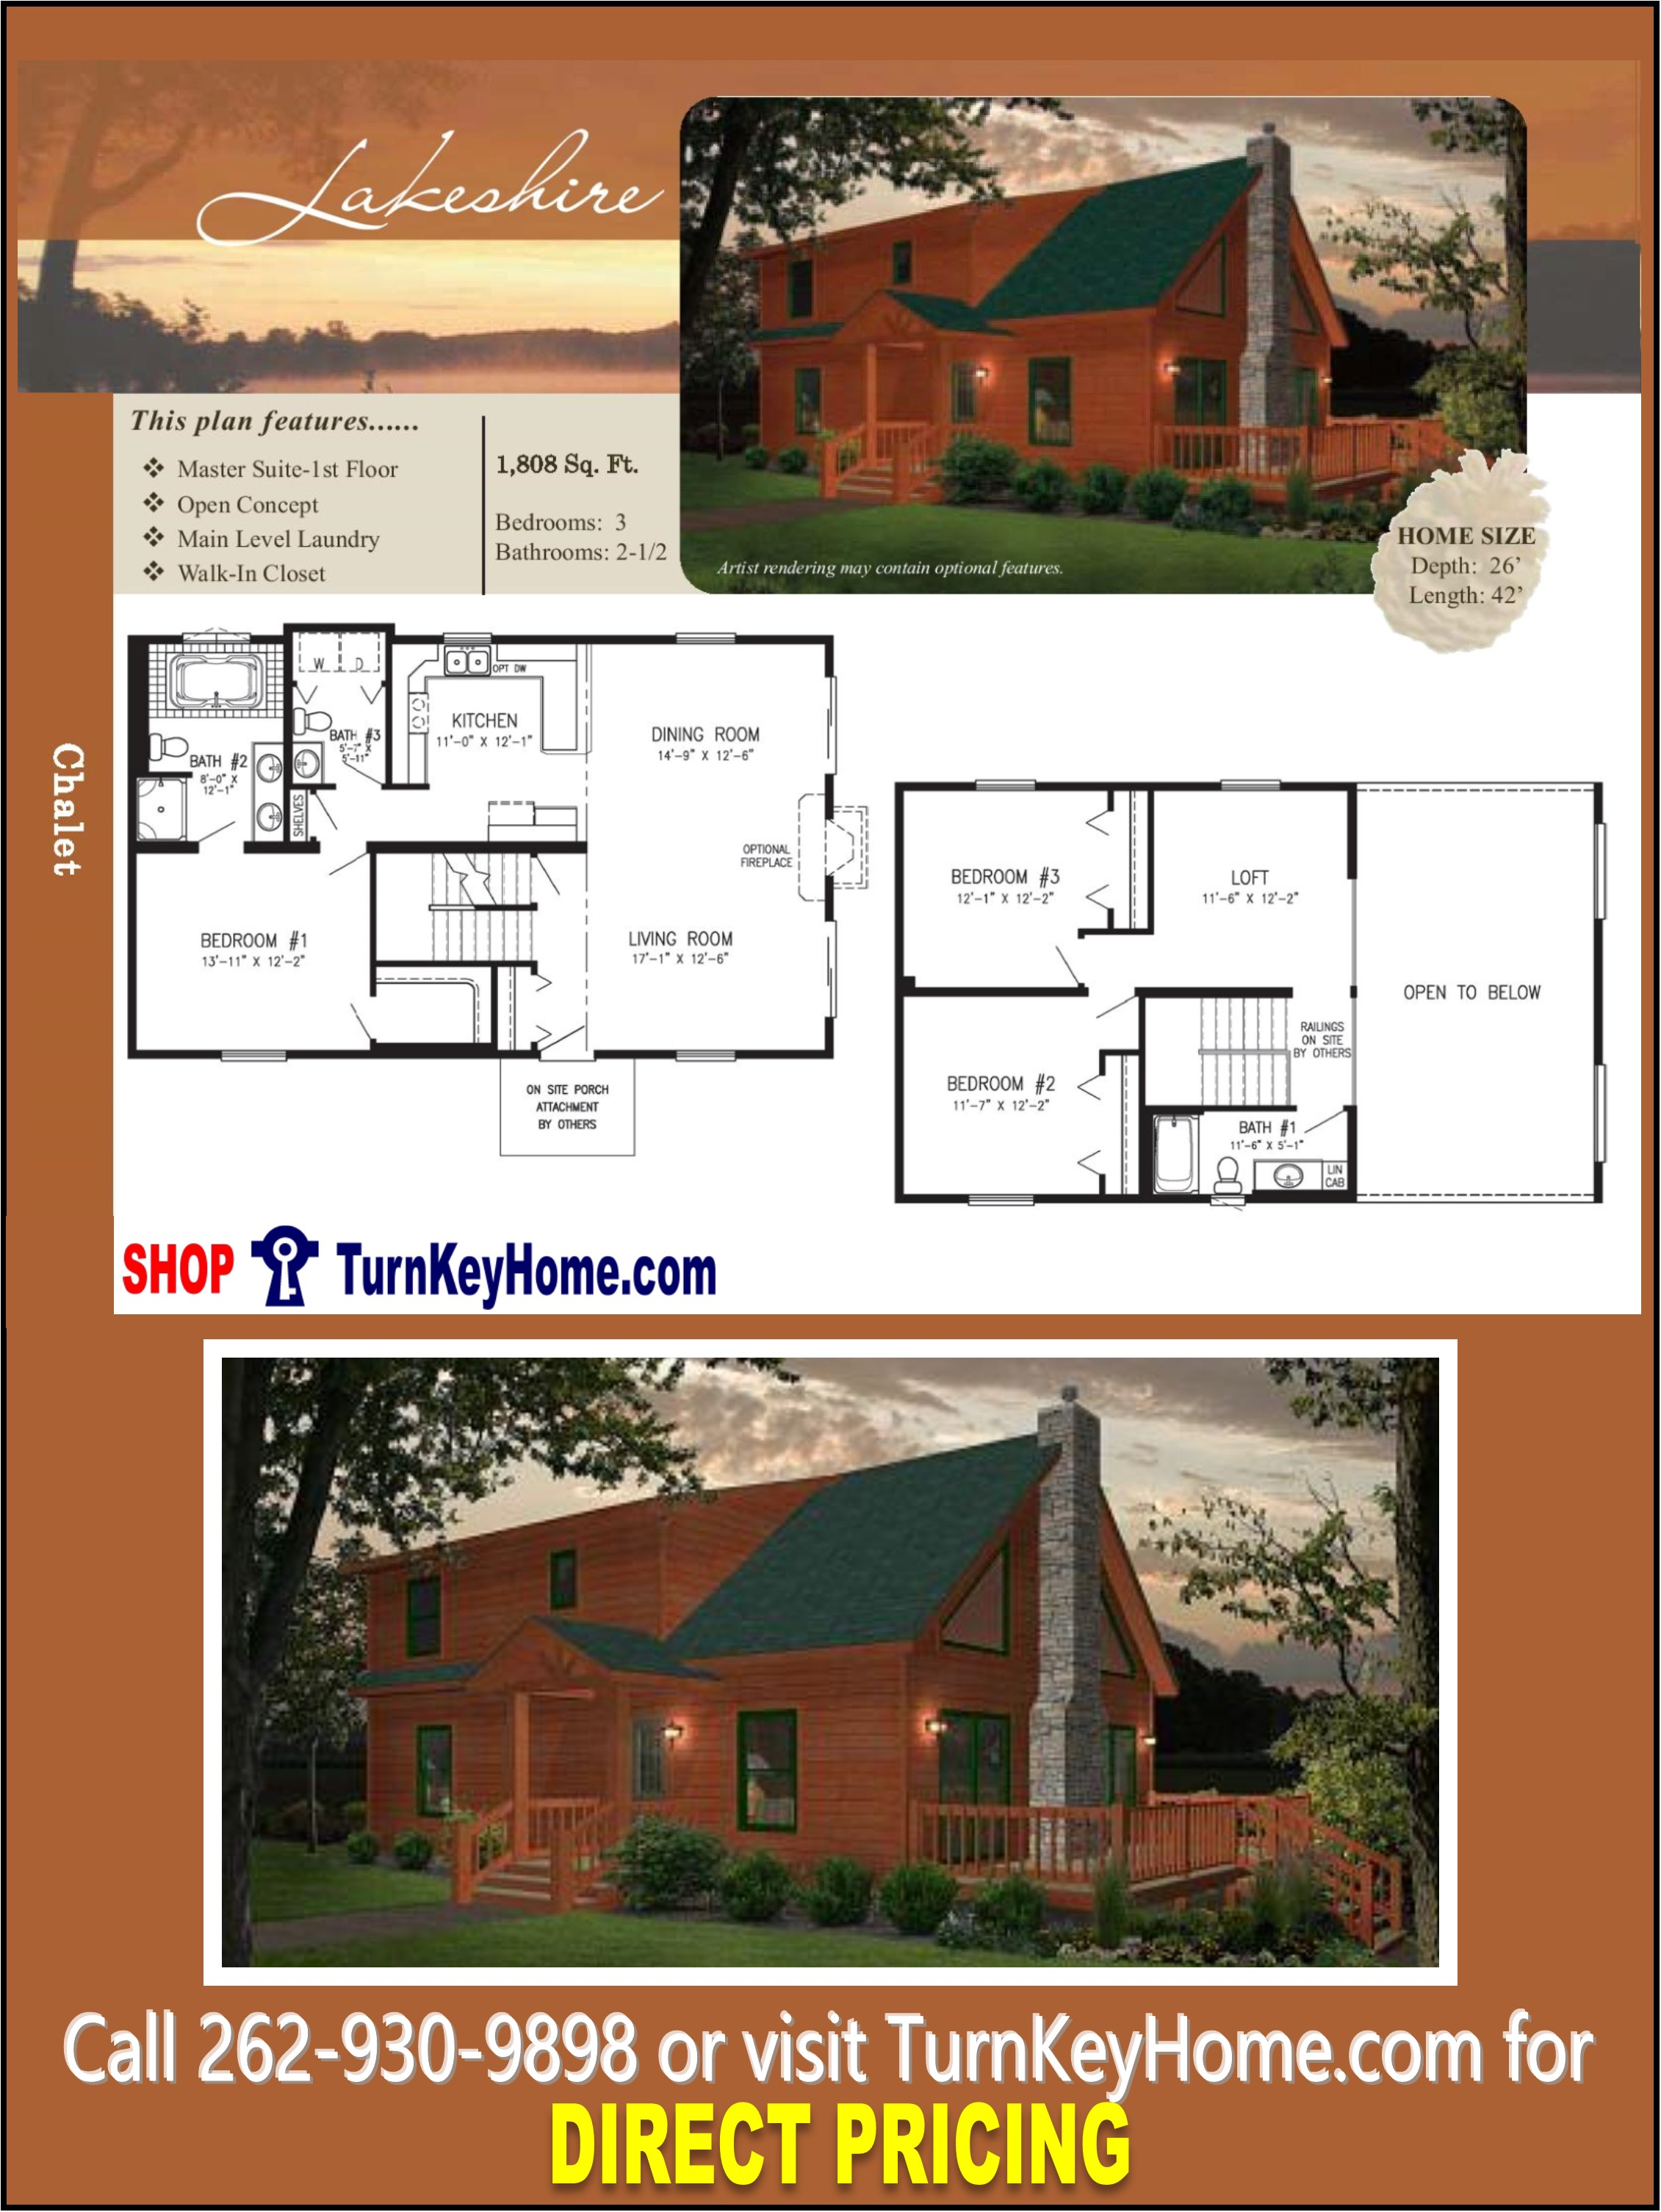 Lakeshire chalet home 3 bed 2 5 bath plan 1808 sf priced for Direct from the designers house plans